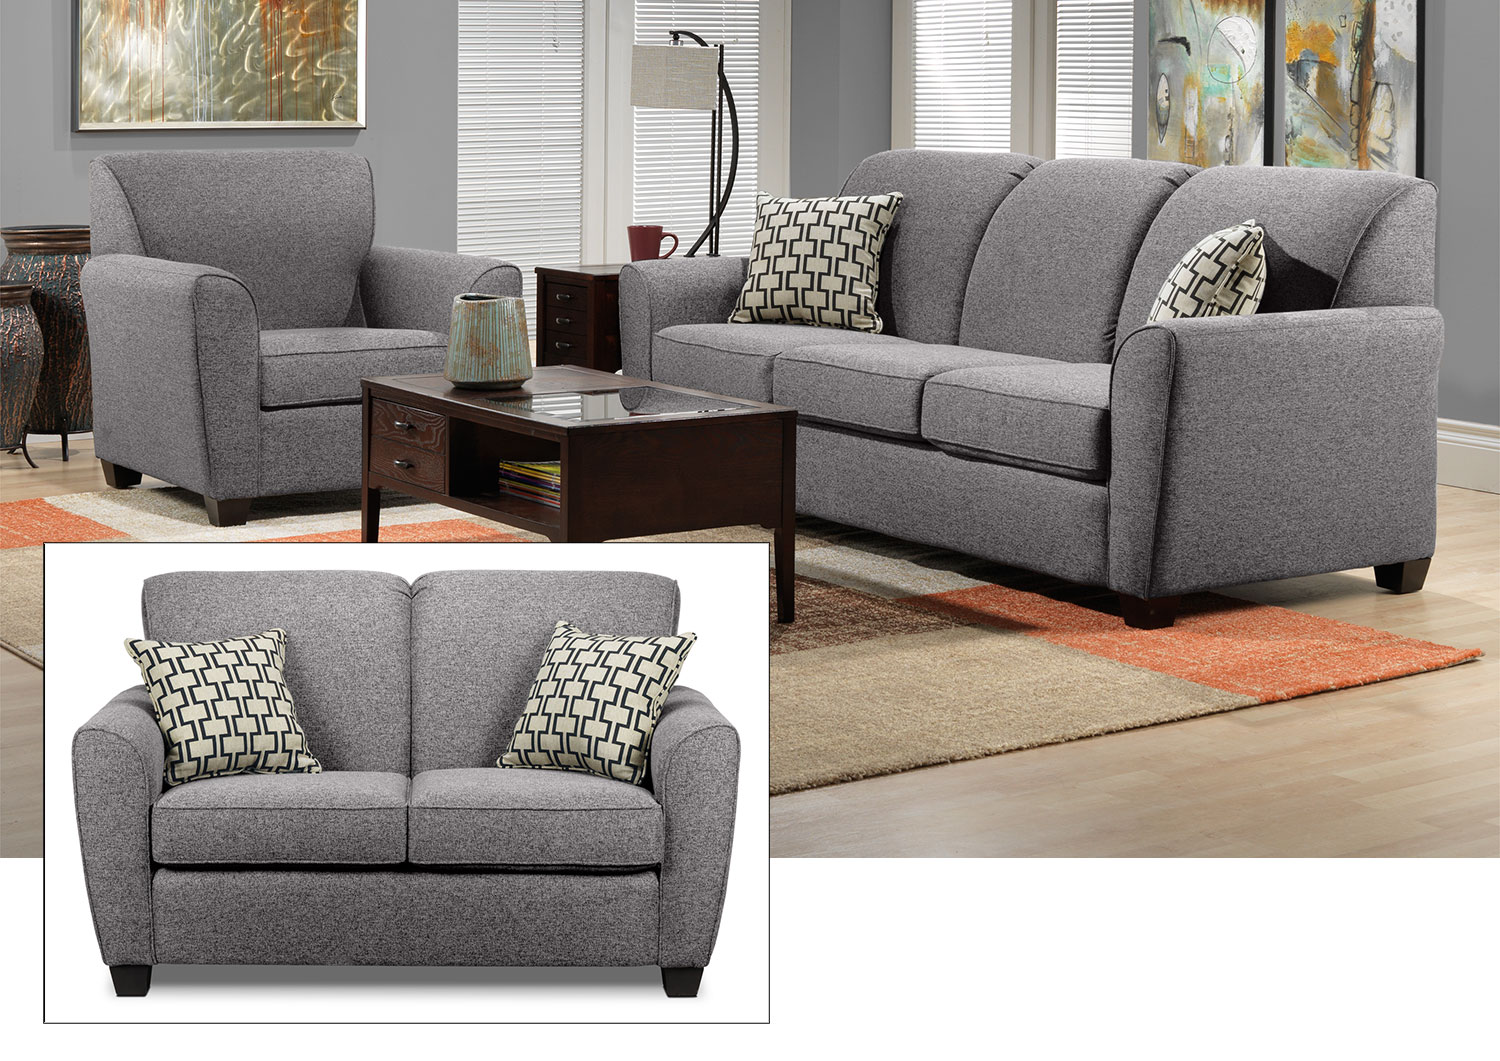 Ashby 3 Pc. Living Room Package - Oreo